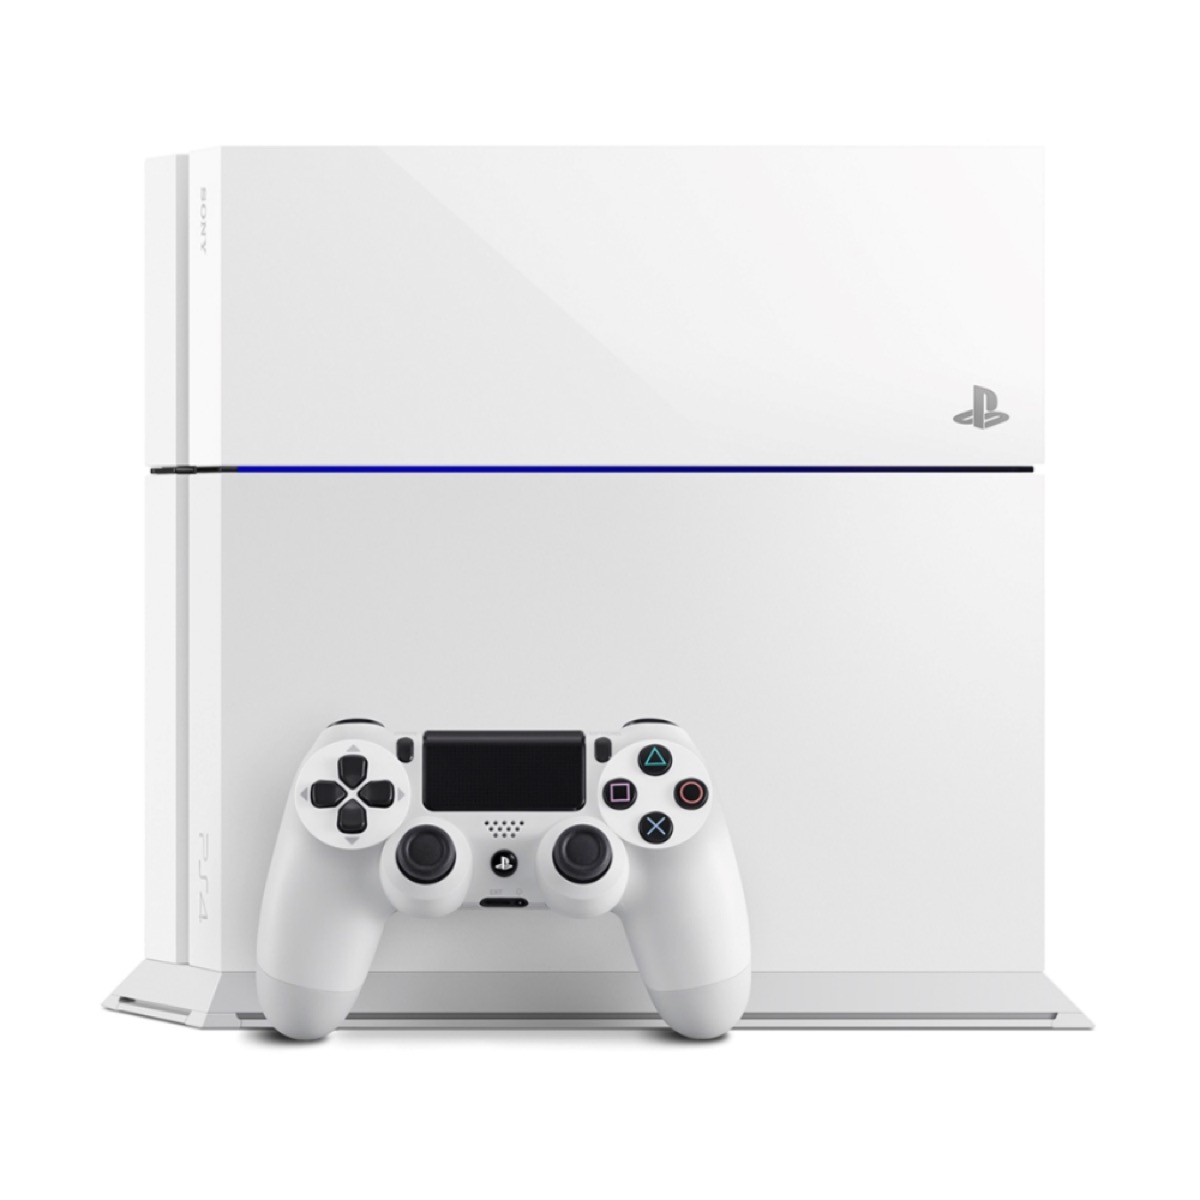 e12ee180625 Details about Sony PlayStation 4 500GB Console Only - Glacier White (No  Controller)